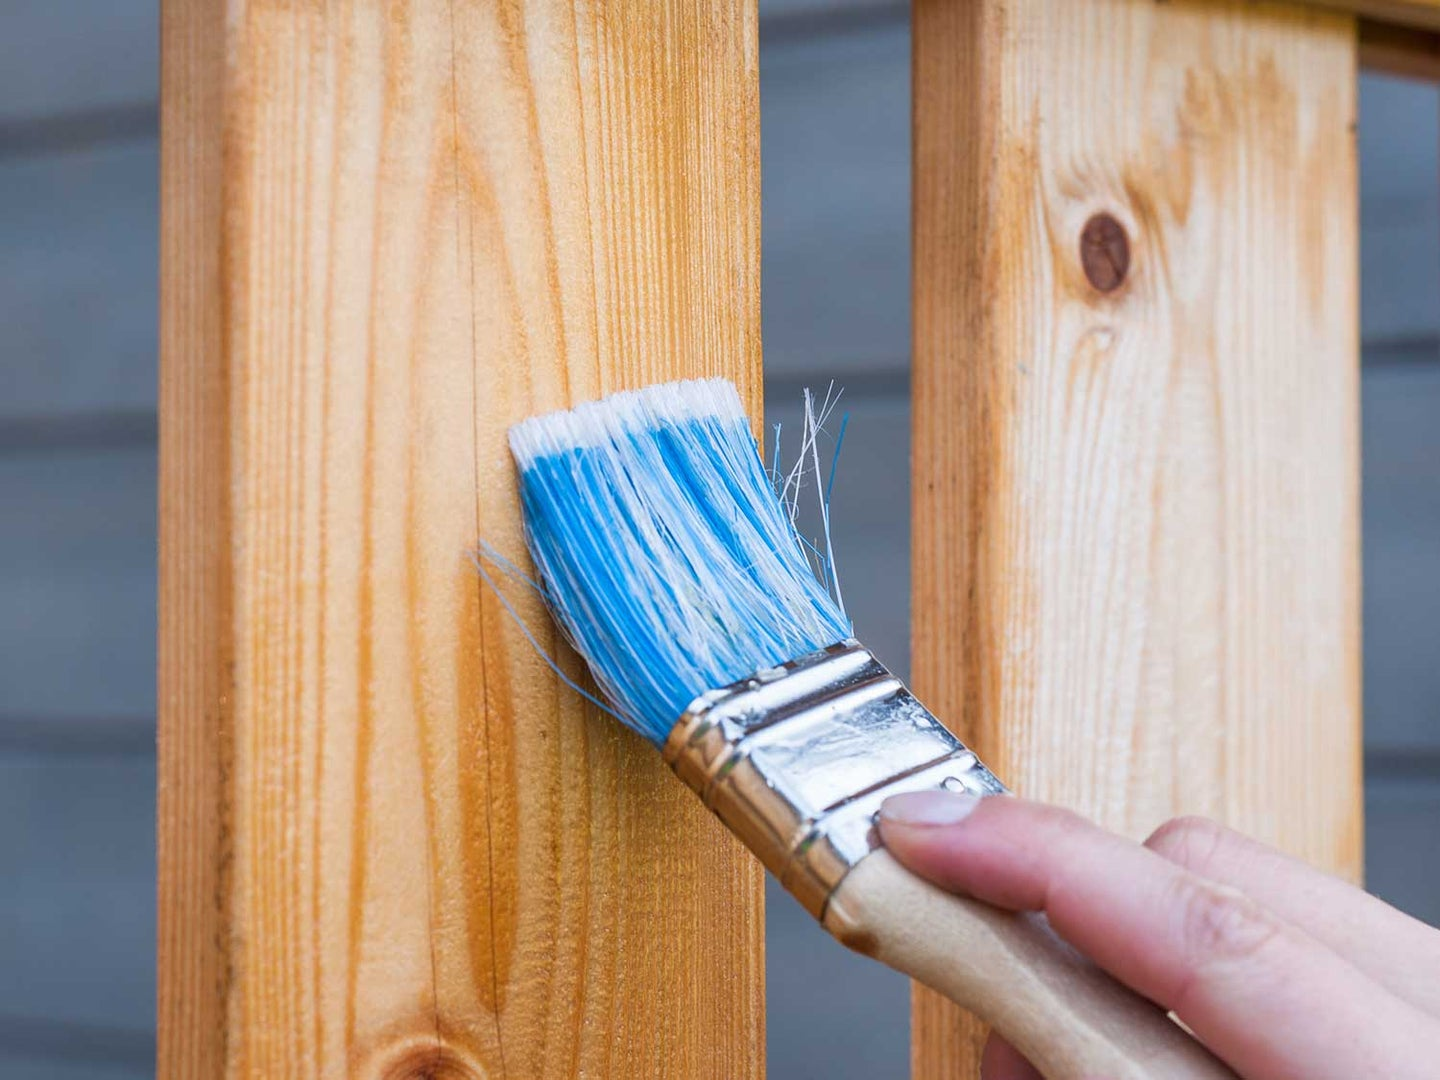 Painting fence with paintbrush.